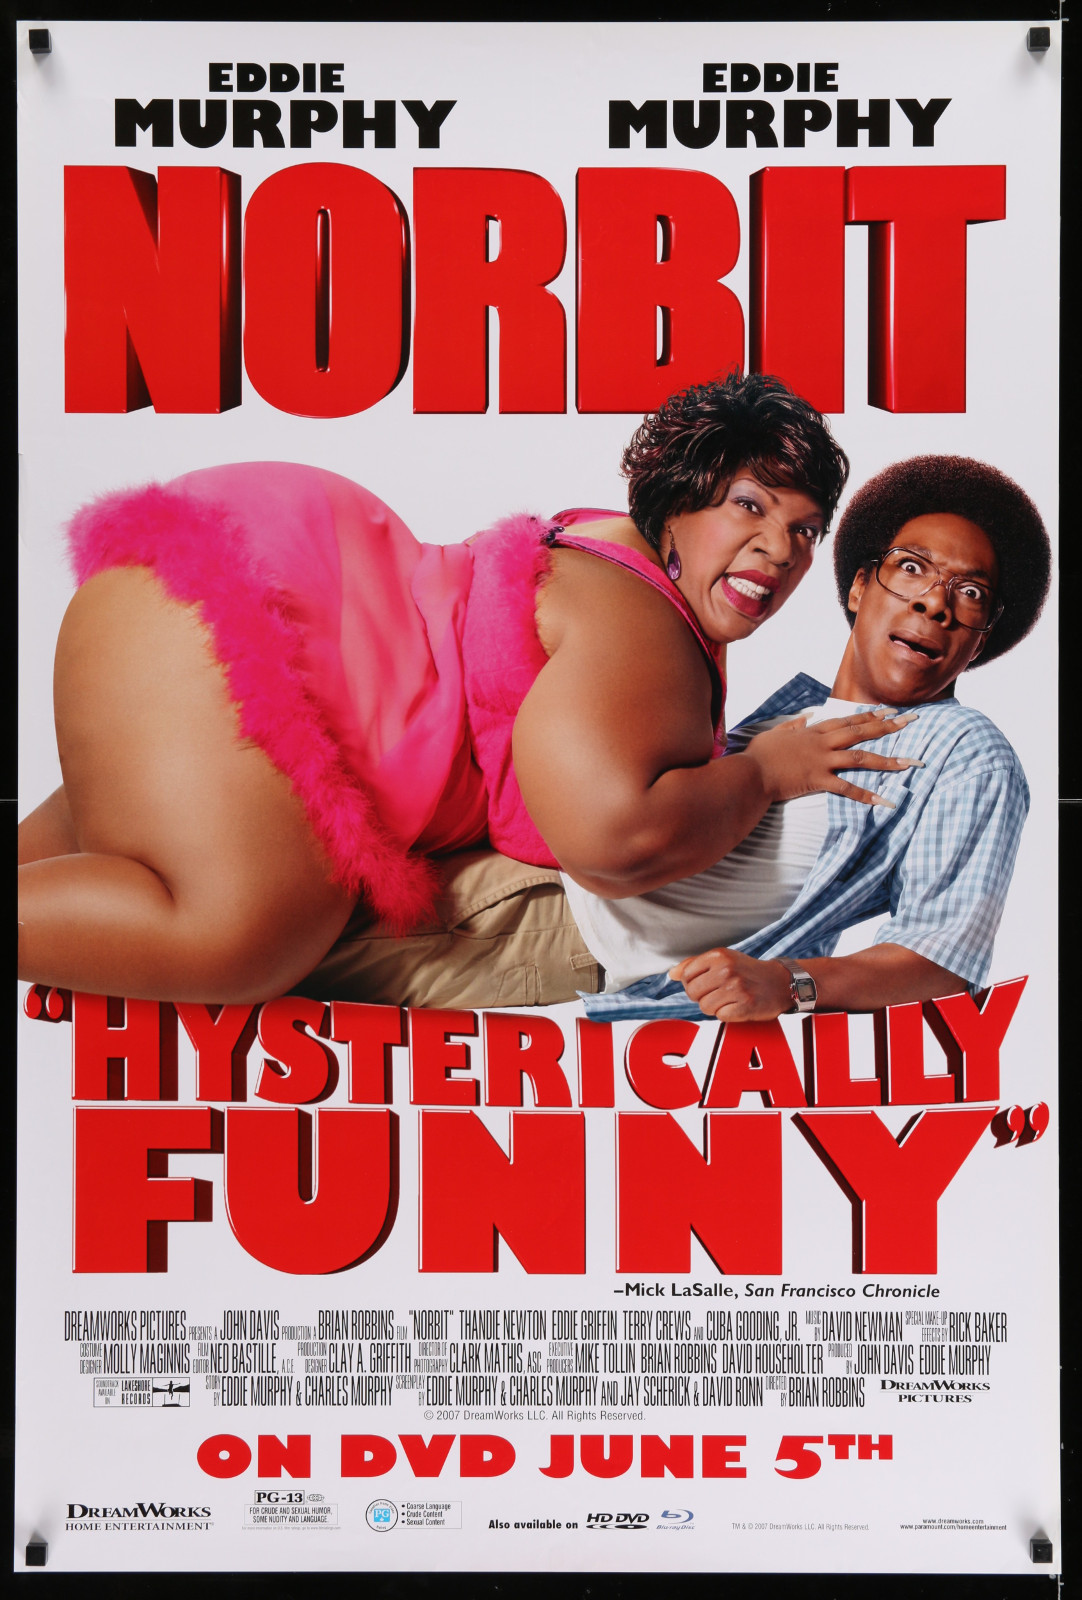 Norbit 2A327 A Part Of A Lot 10 Unfolded Video And Special Posters '80S-00S Many Great Movie Images!